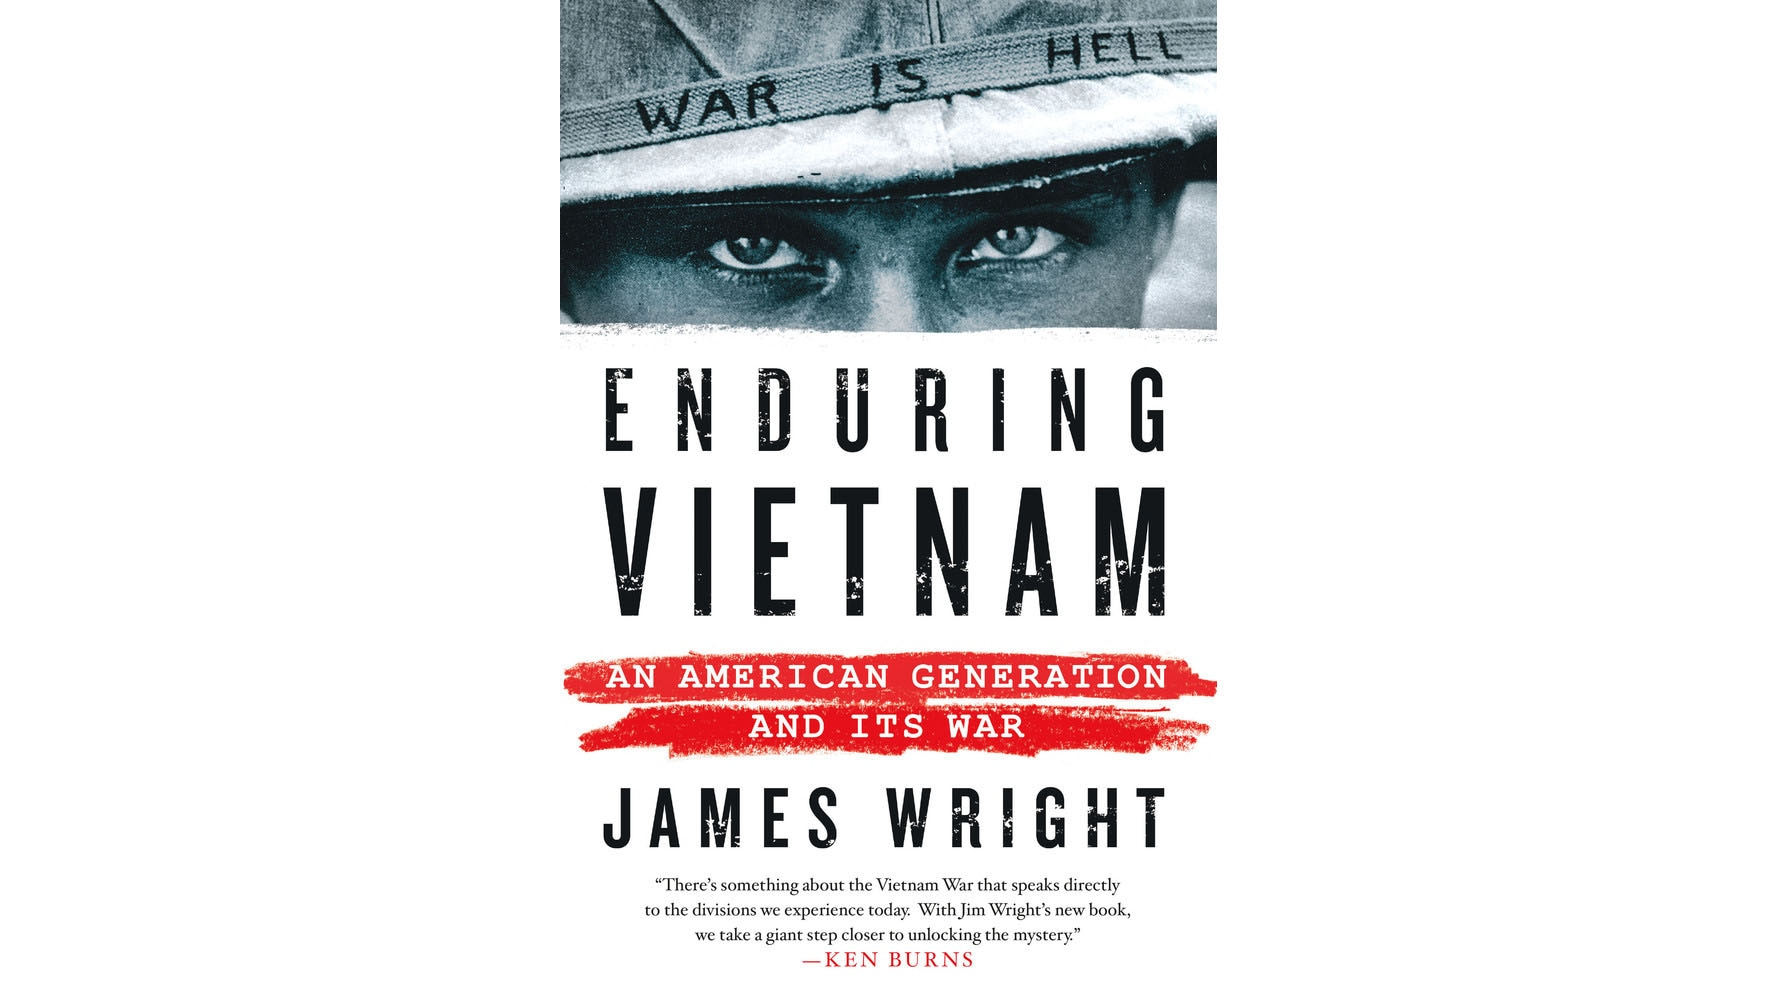 Spring 2017 book review -- Enduring Vietnam: An American Generation and Its War